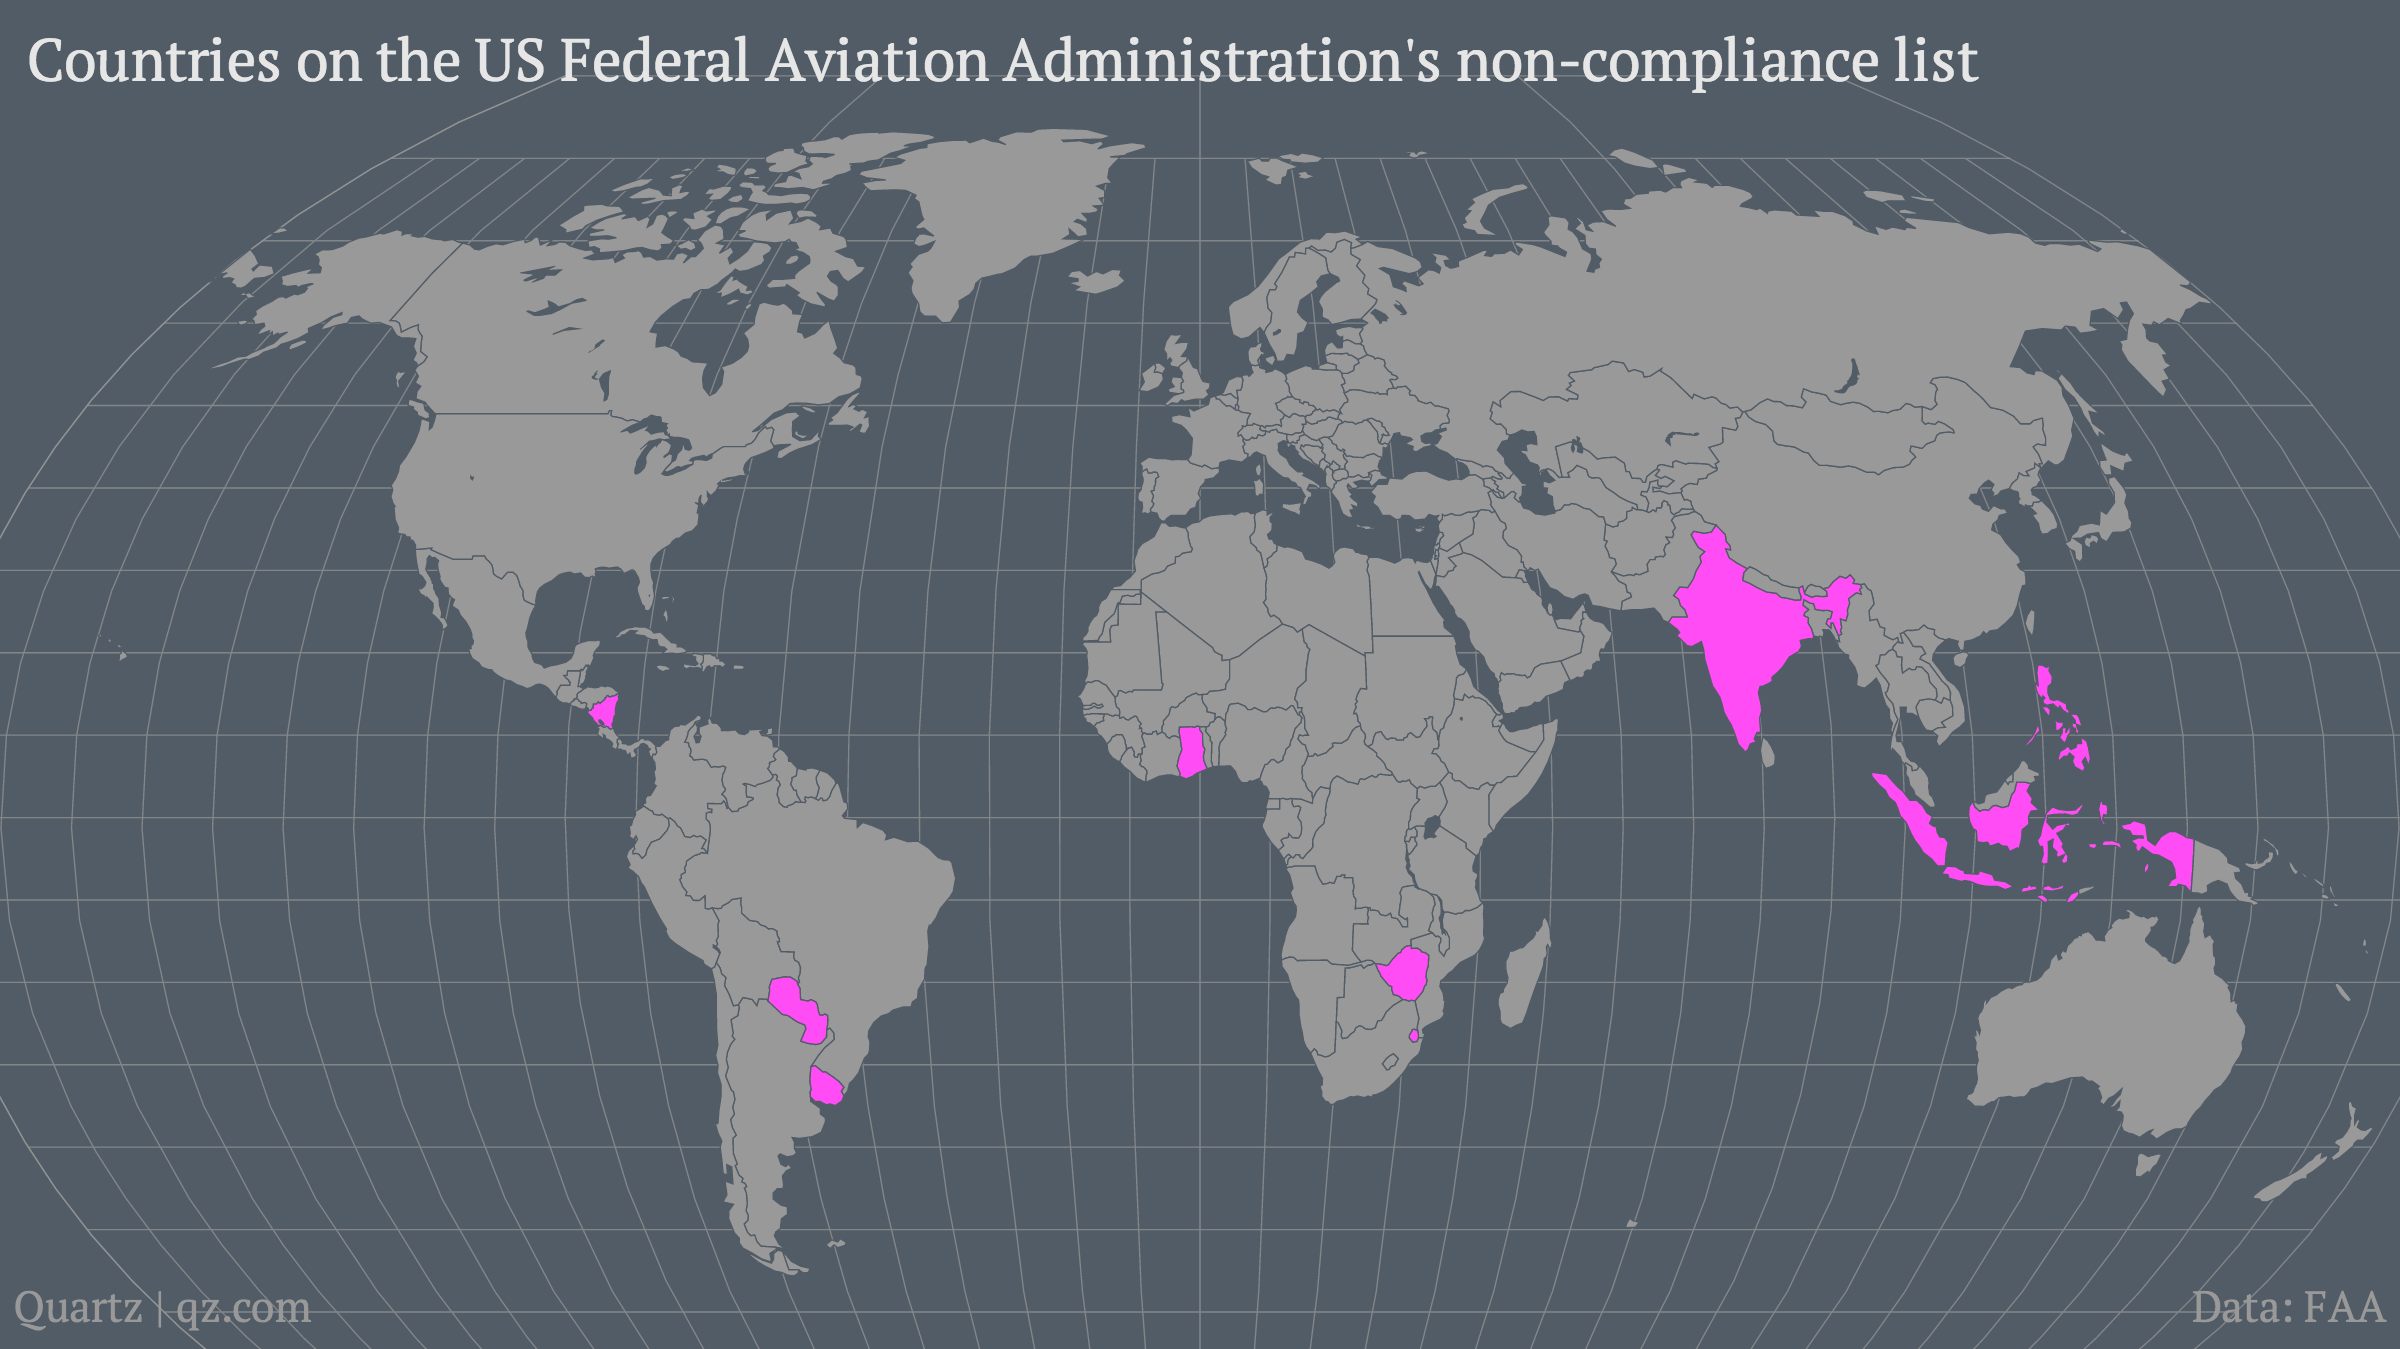 Countries-on-the-US-Federal-Aviation-Administration-s-non-compliance-list_mapbuilder